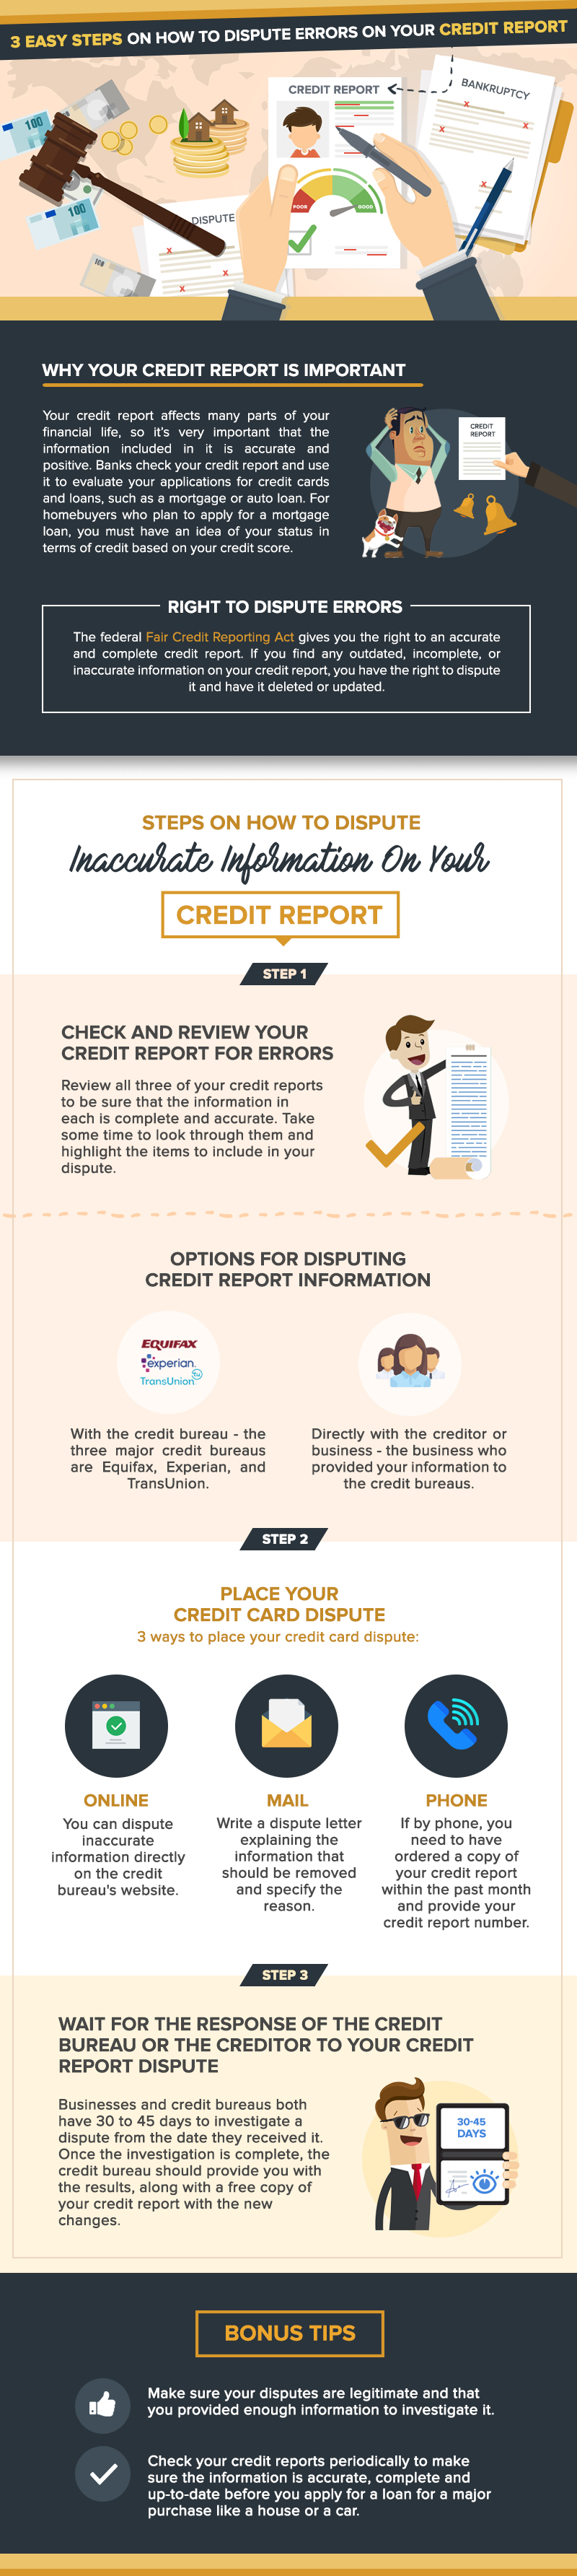 3 Easy Steps On How To Dispute Errors On Your Credit Report